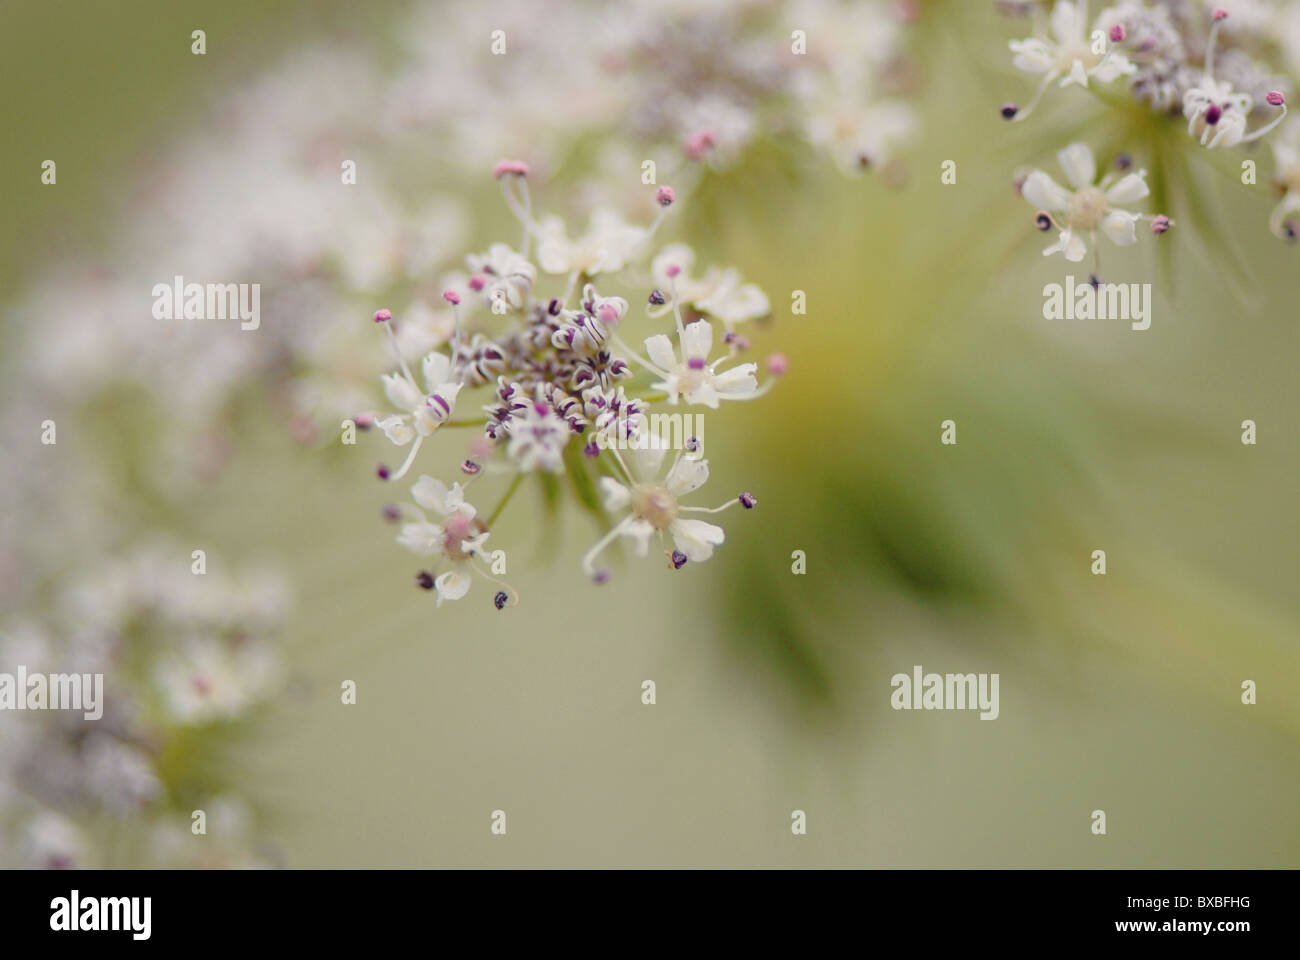 Close-up of Queen Anne's lace flowers - Daucus carota - Stock Image